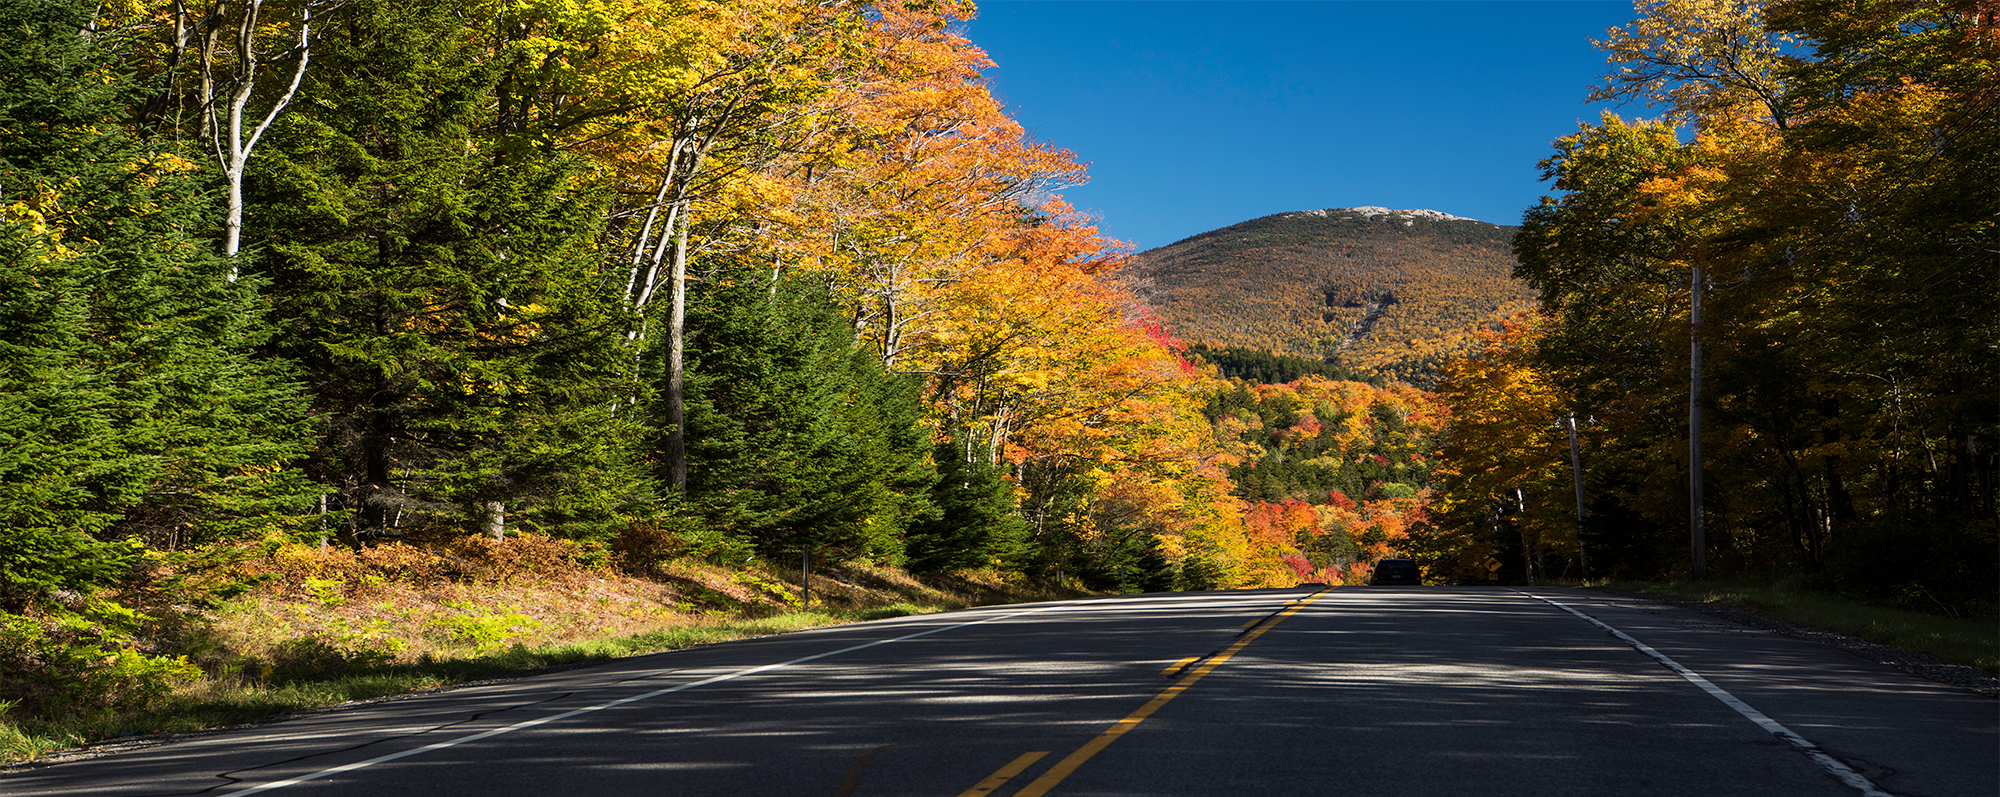 New York Scenic Drives